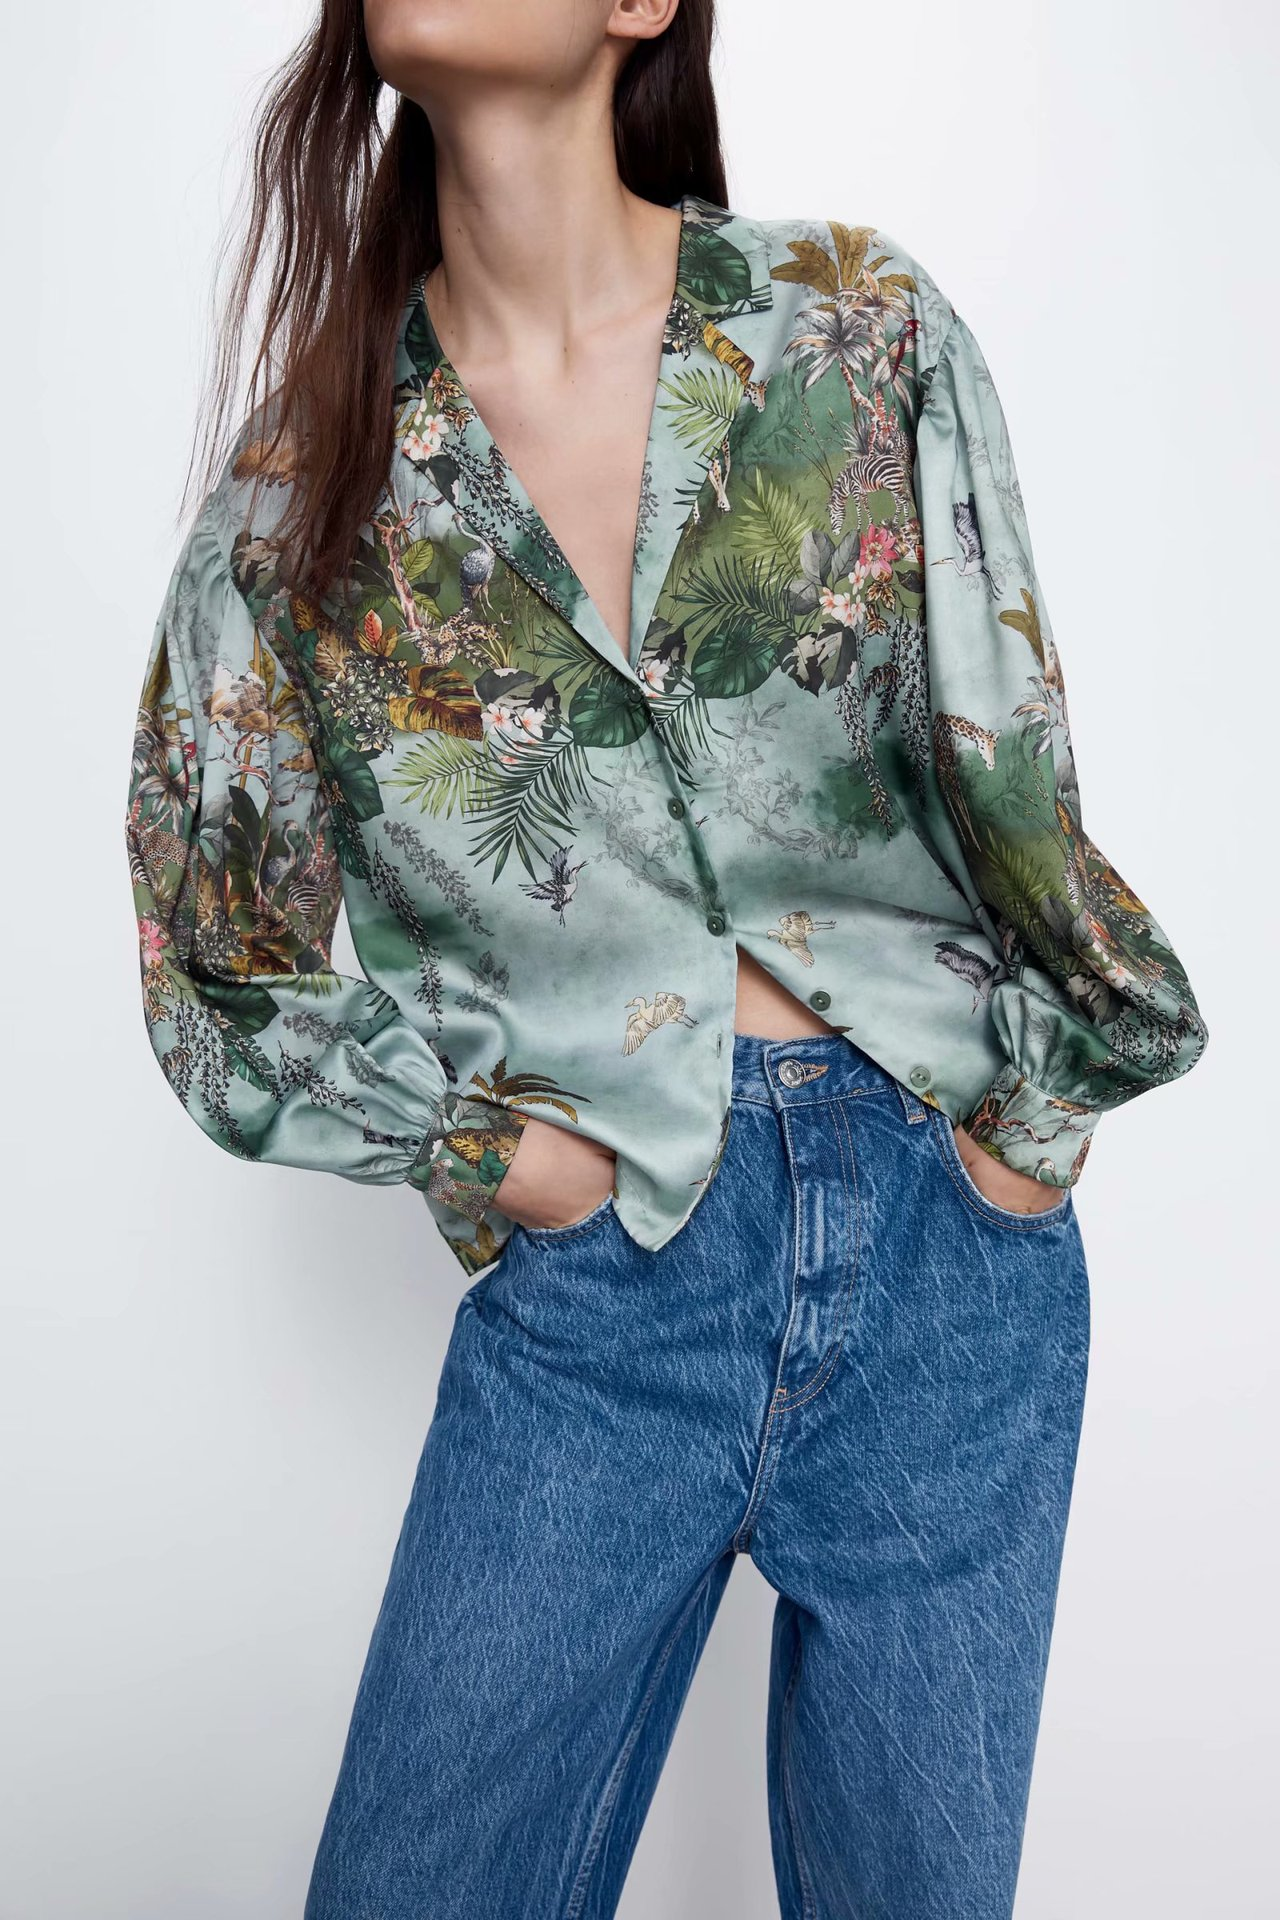 2020 Spring And Summer New Style European Printed Flowing Shirt Zaraing Vadiming Sheining Women's Shirt